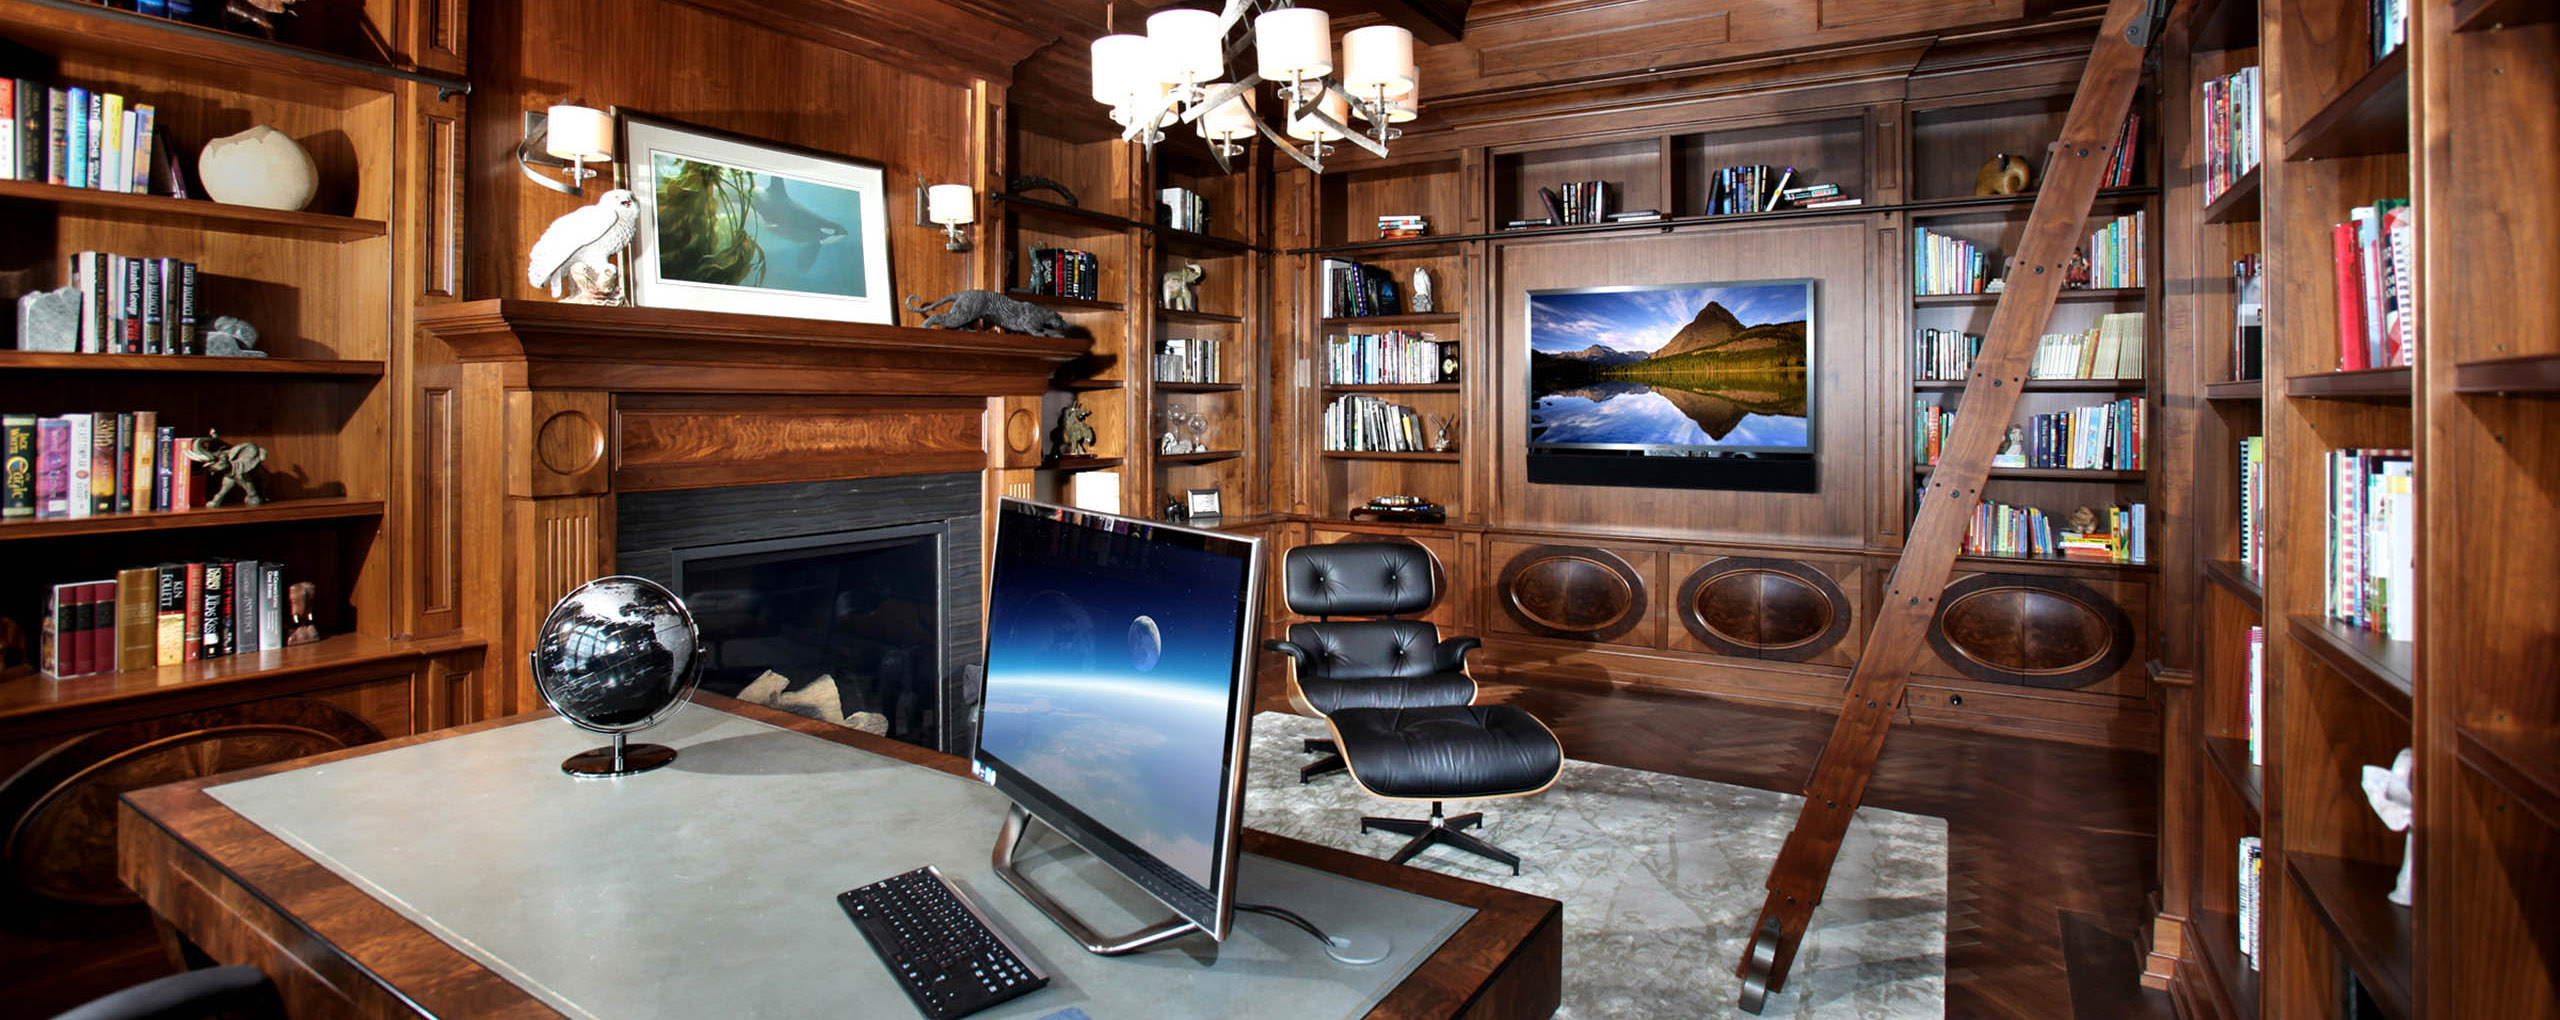 noble register furniture reseller cupboard a house slideshow with as